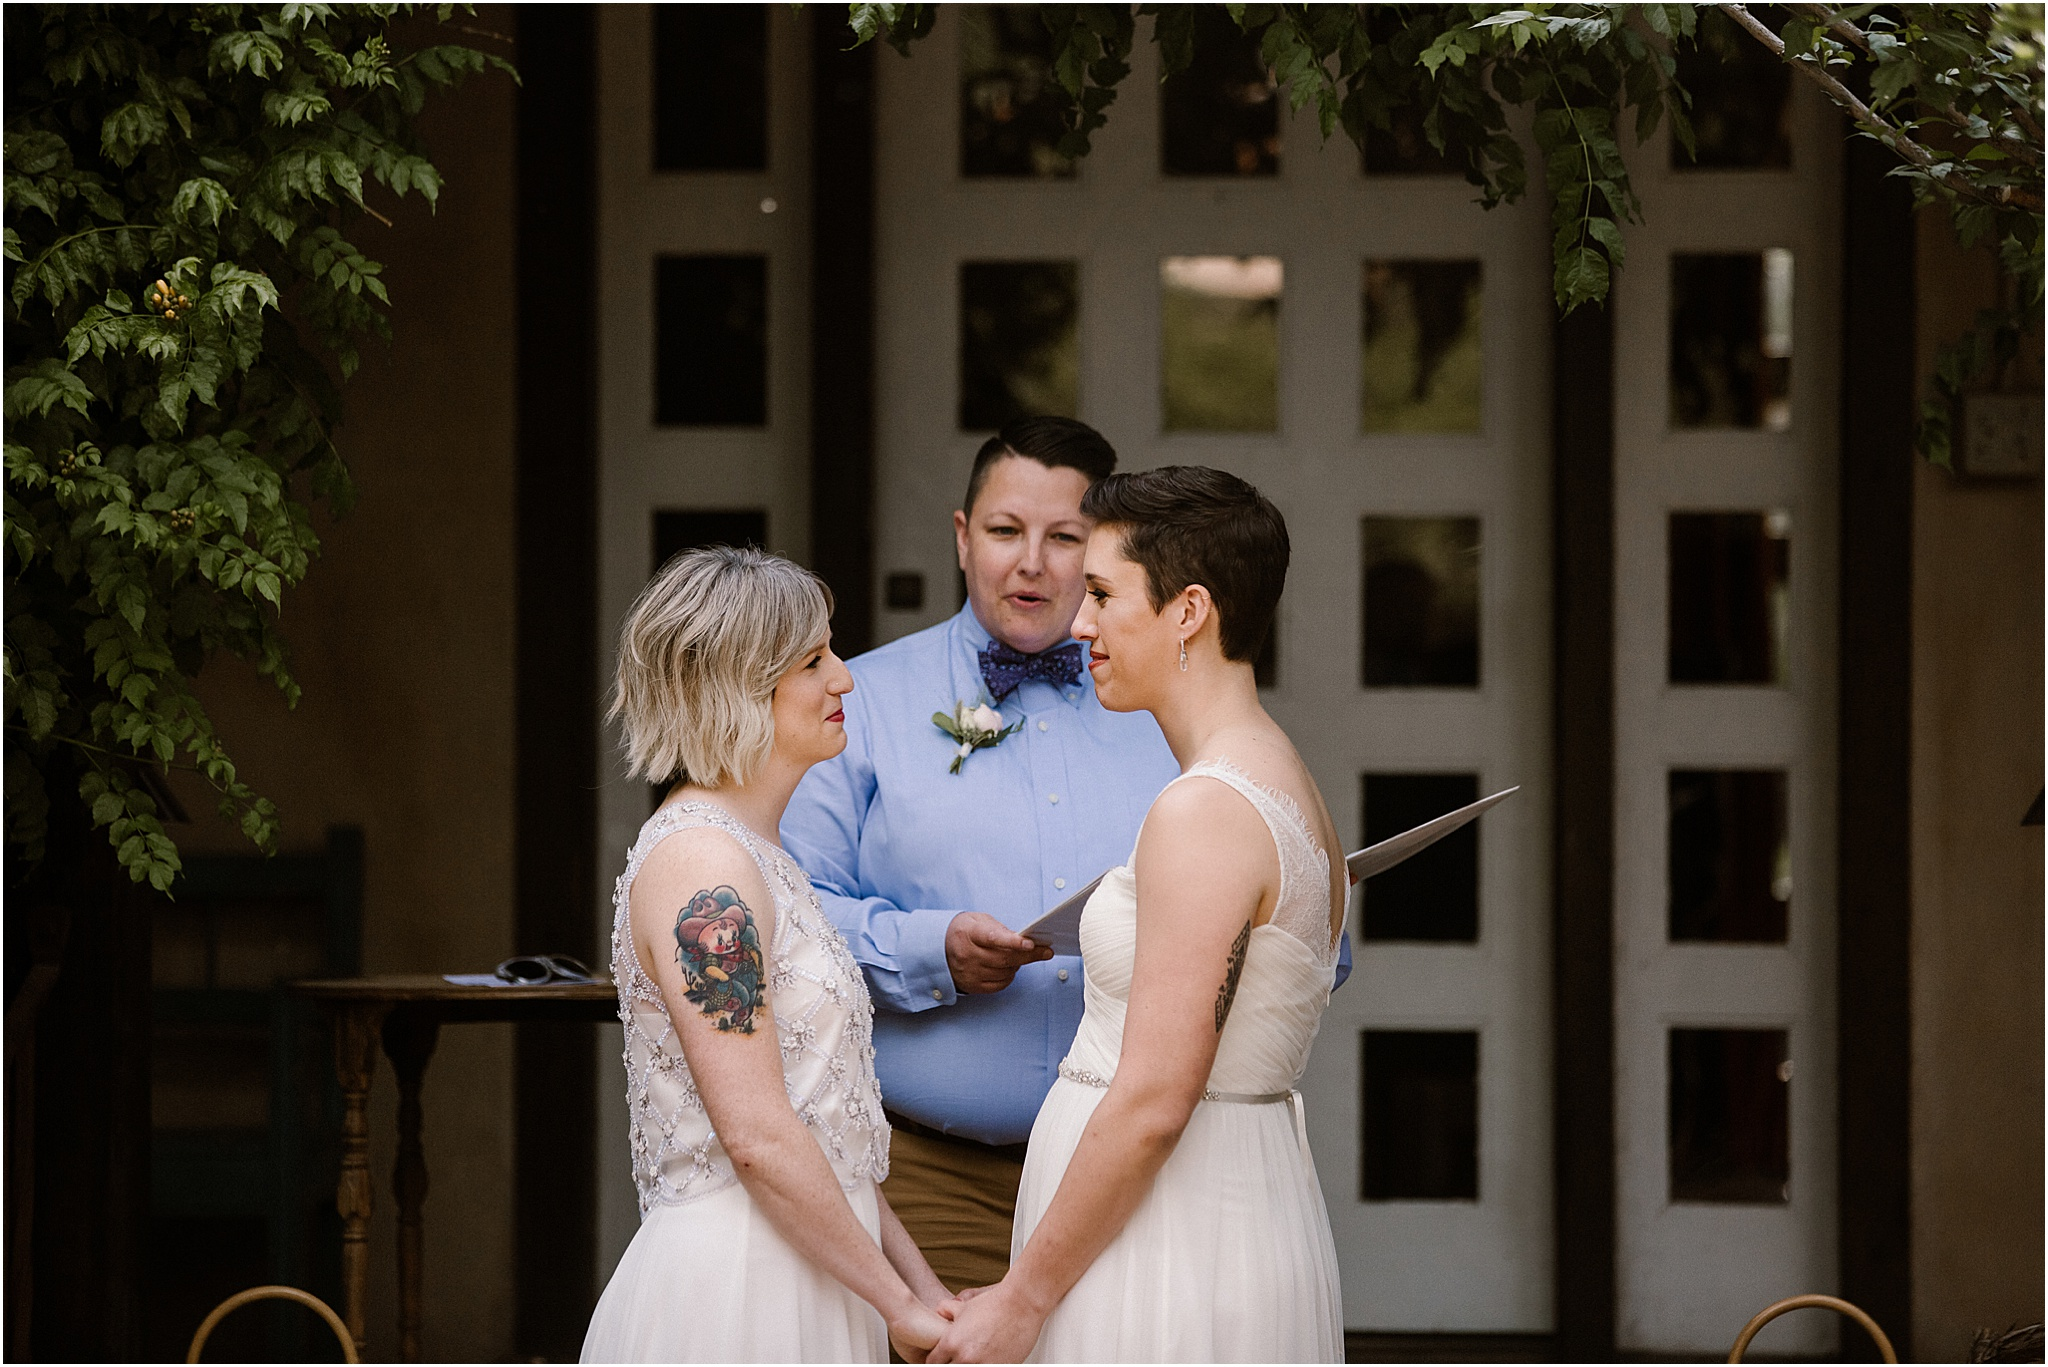 Kelly_Lisa_Los Poblanos_Wedding_Blue Rose Photography81